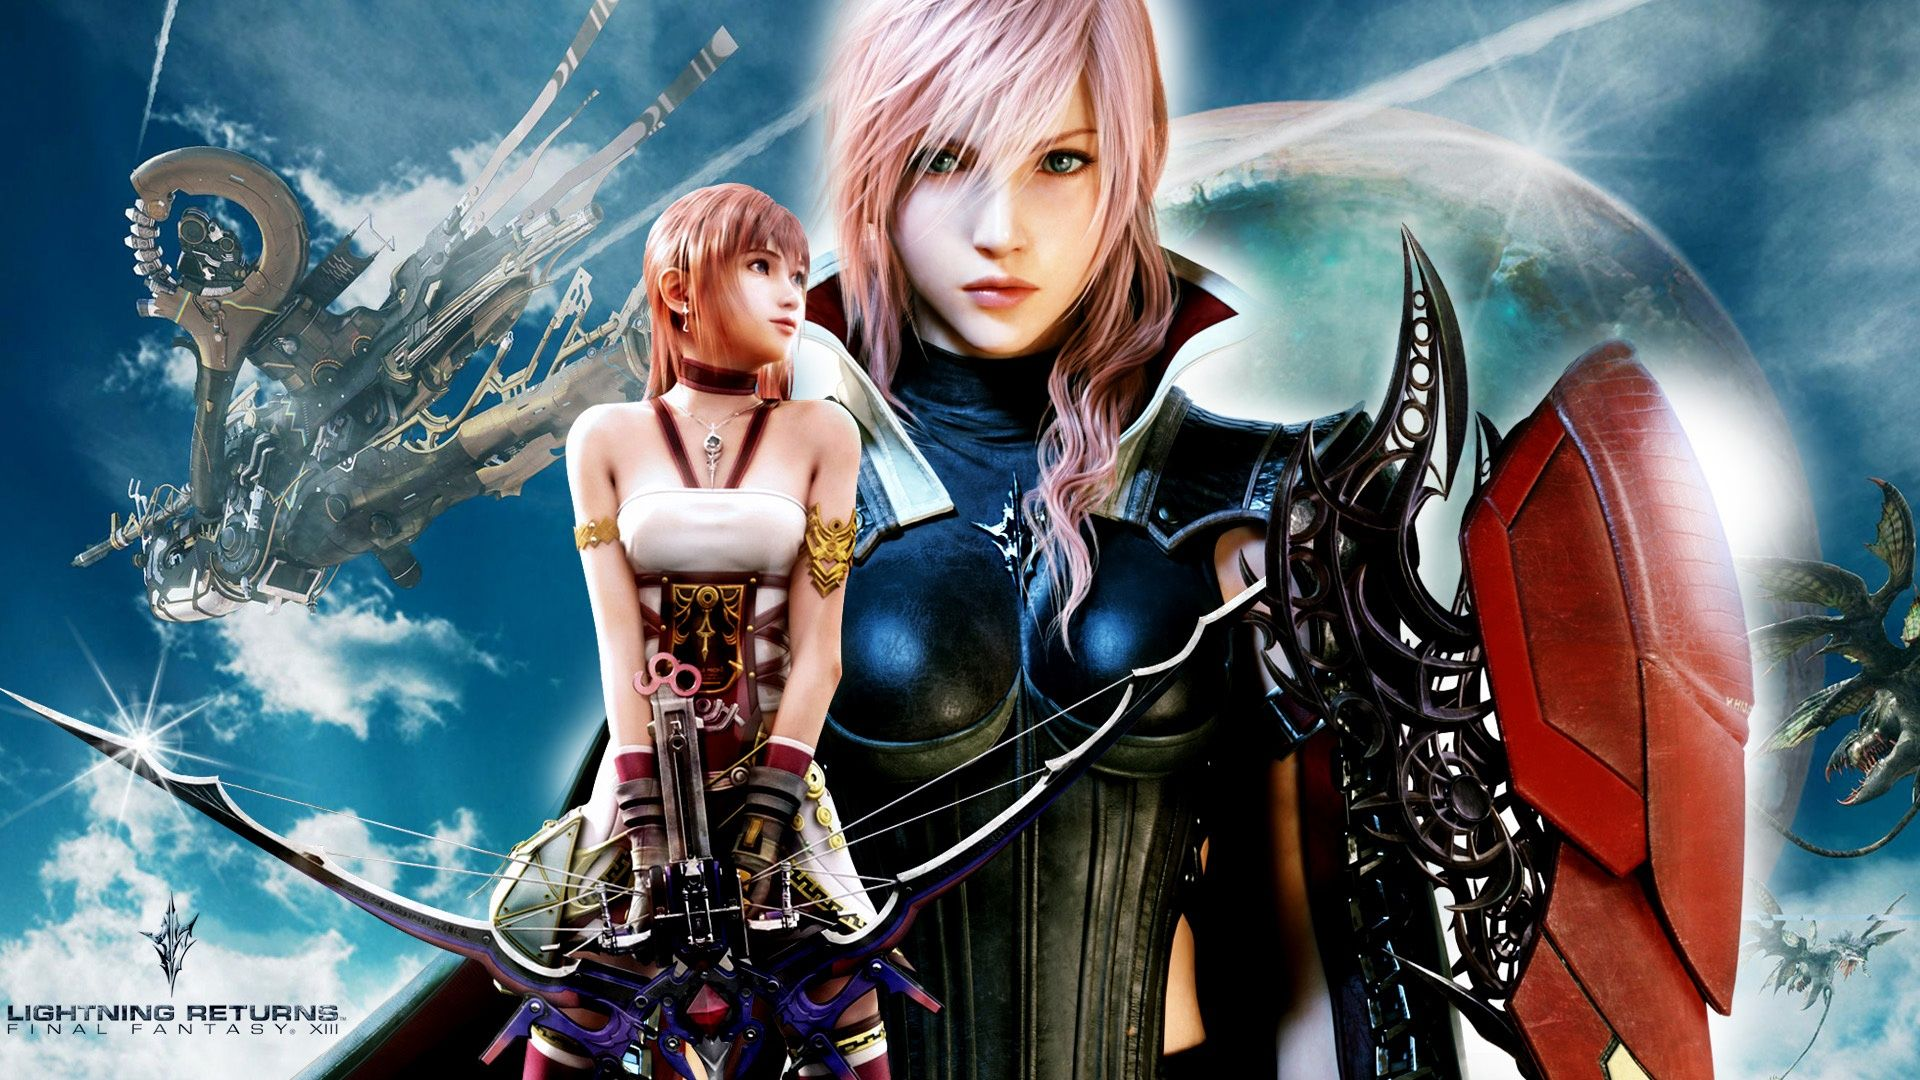 lightning returns final fantasy xiii hd 1080p wallpapers download